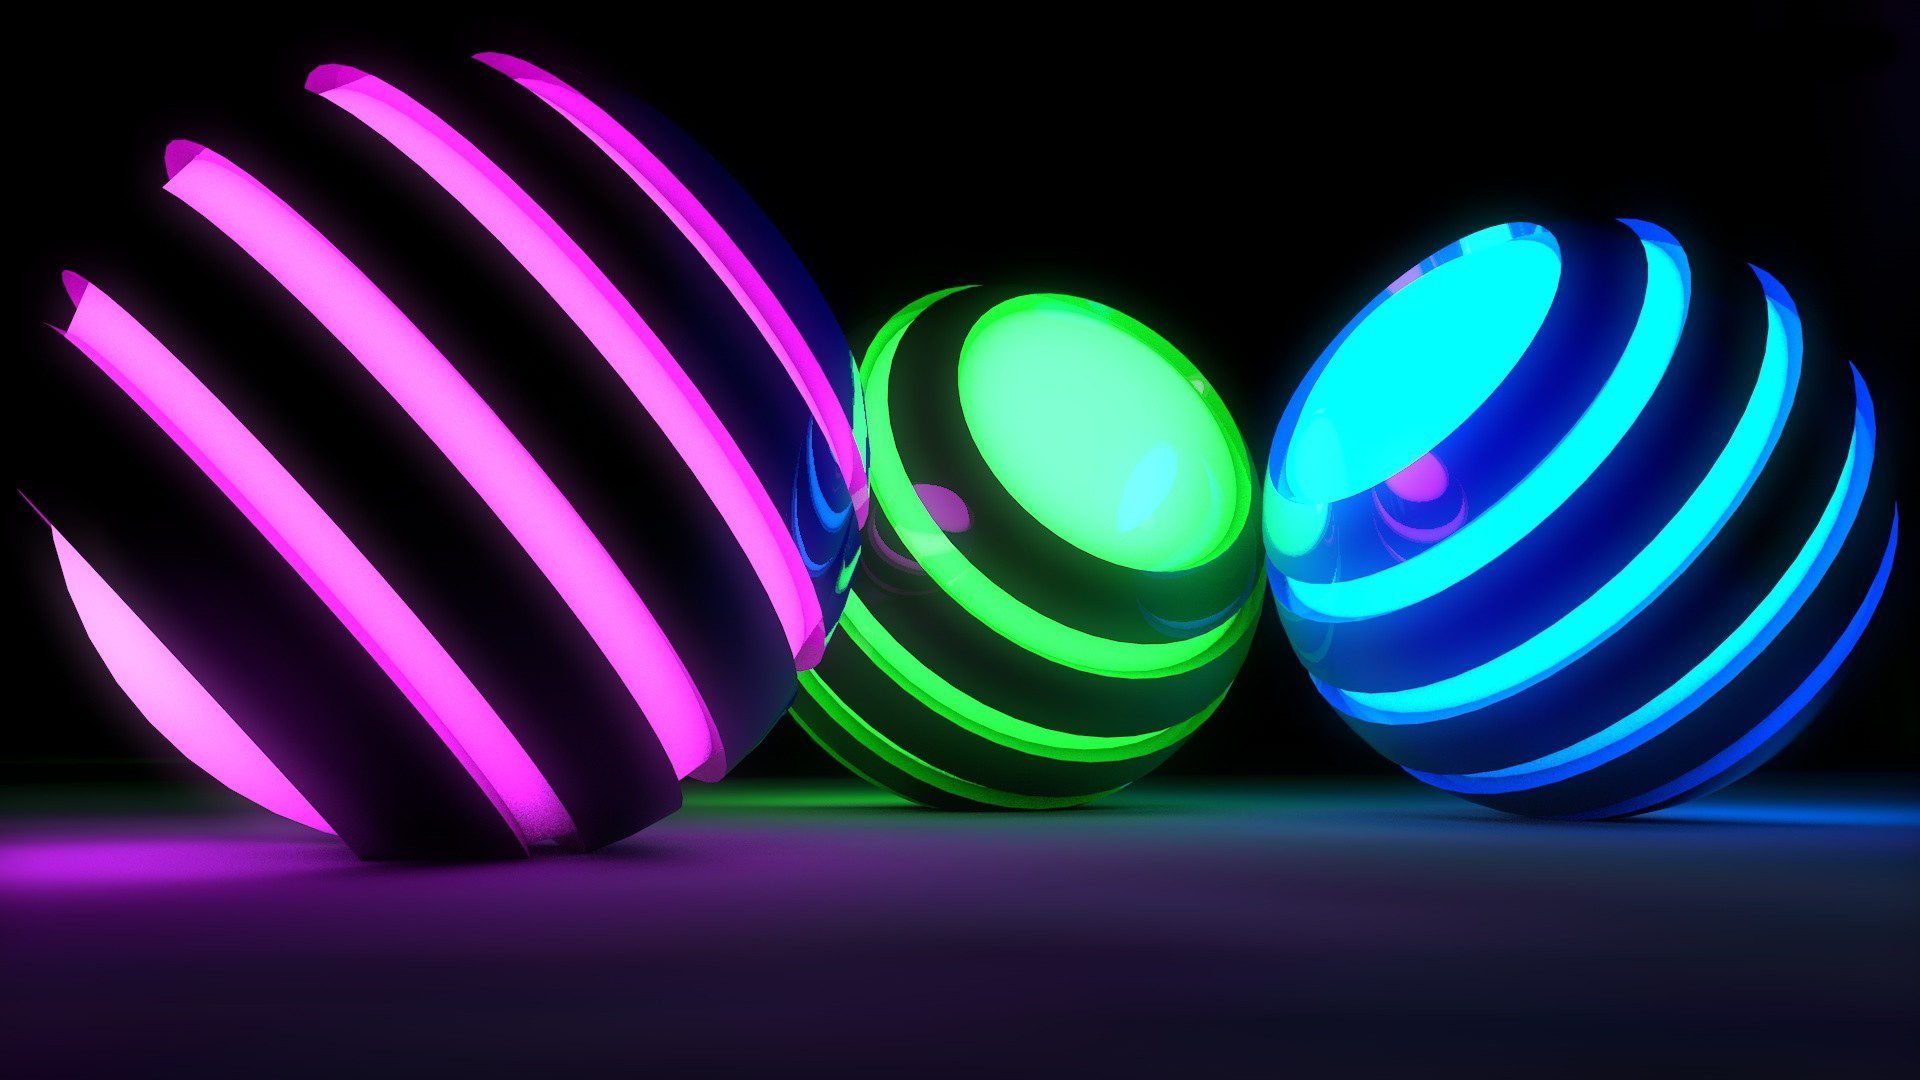 Wallpaper Neon for Download 37 Neon HD Widescreen 1920x1080